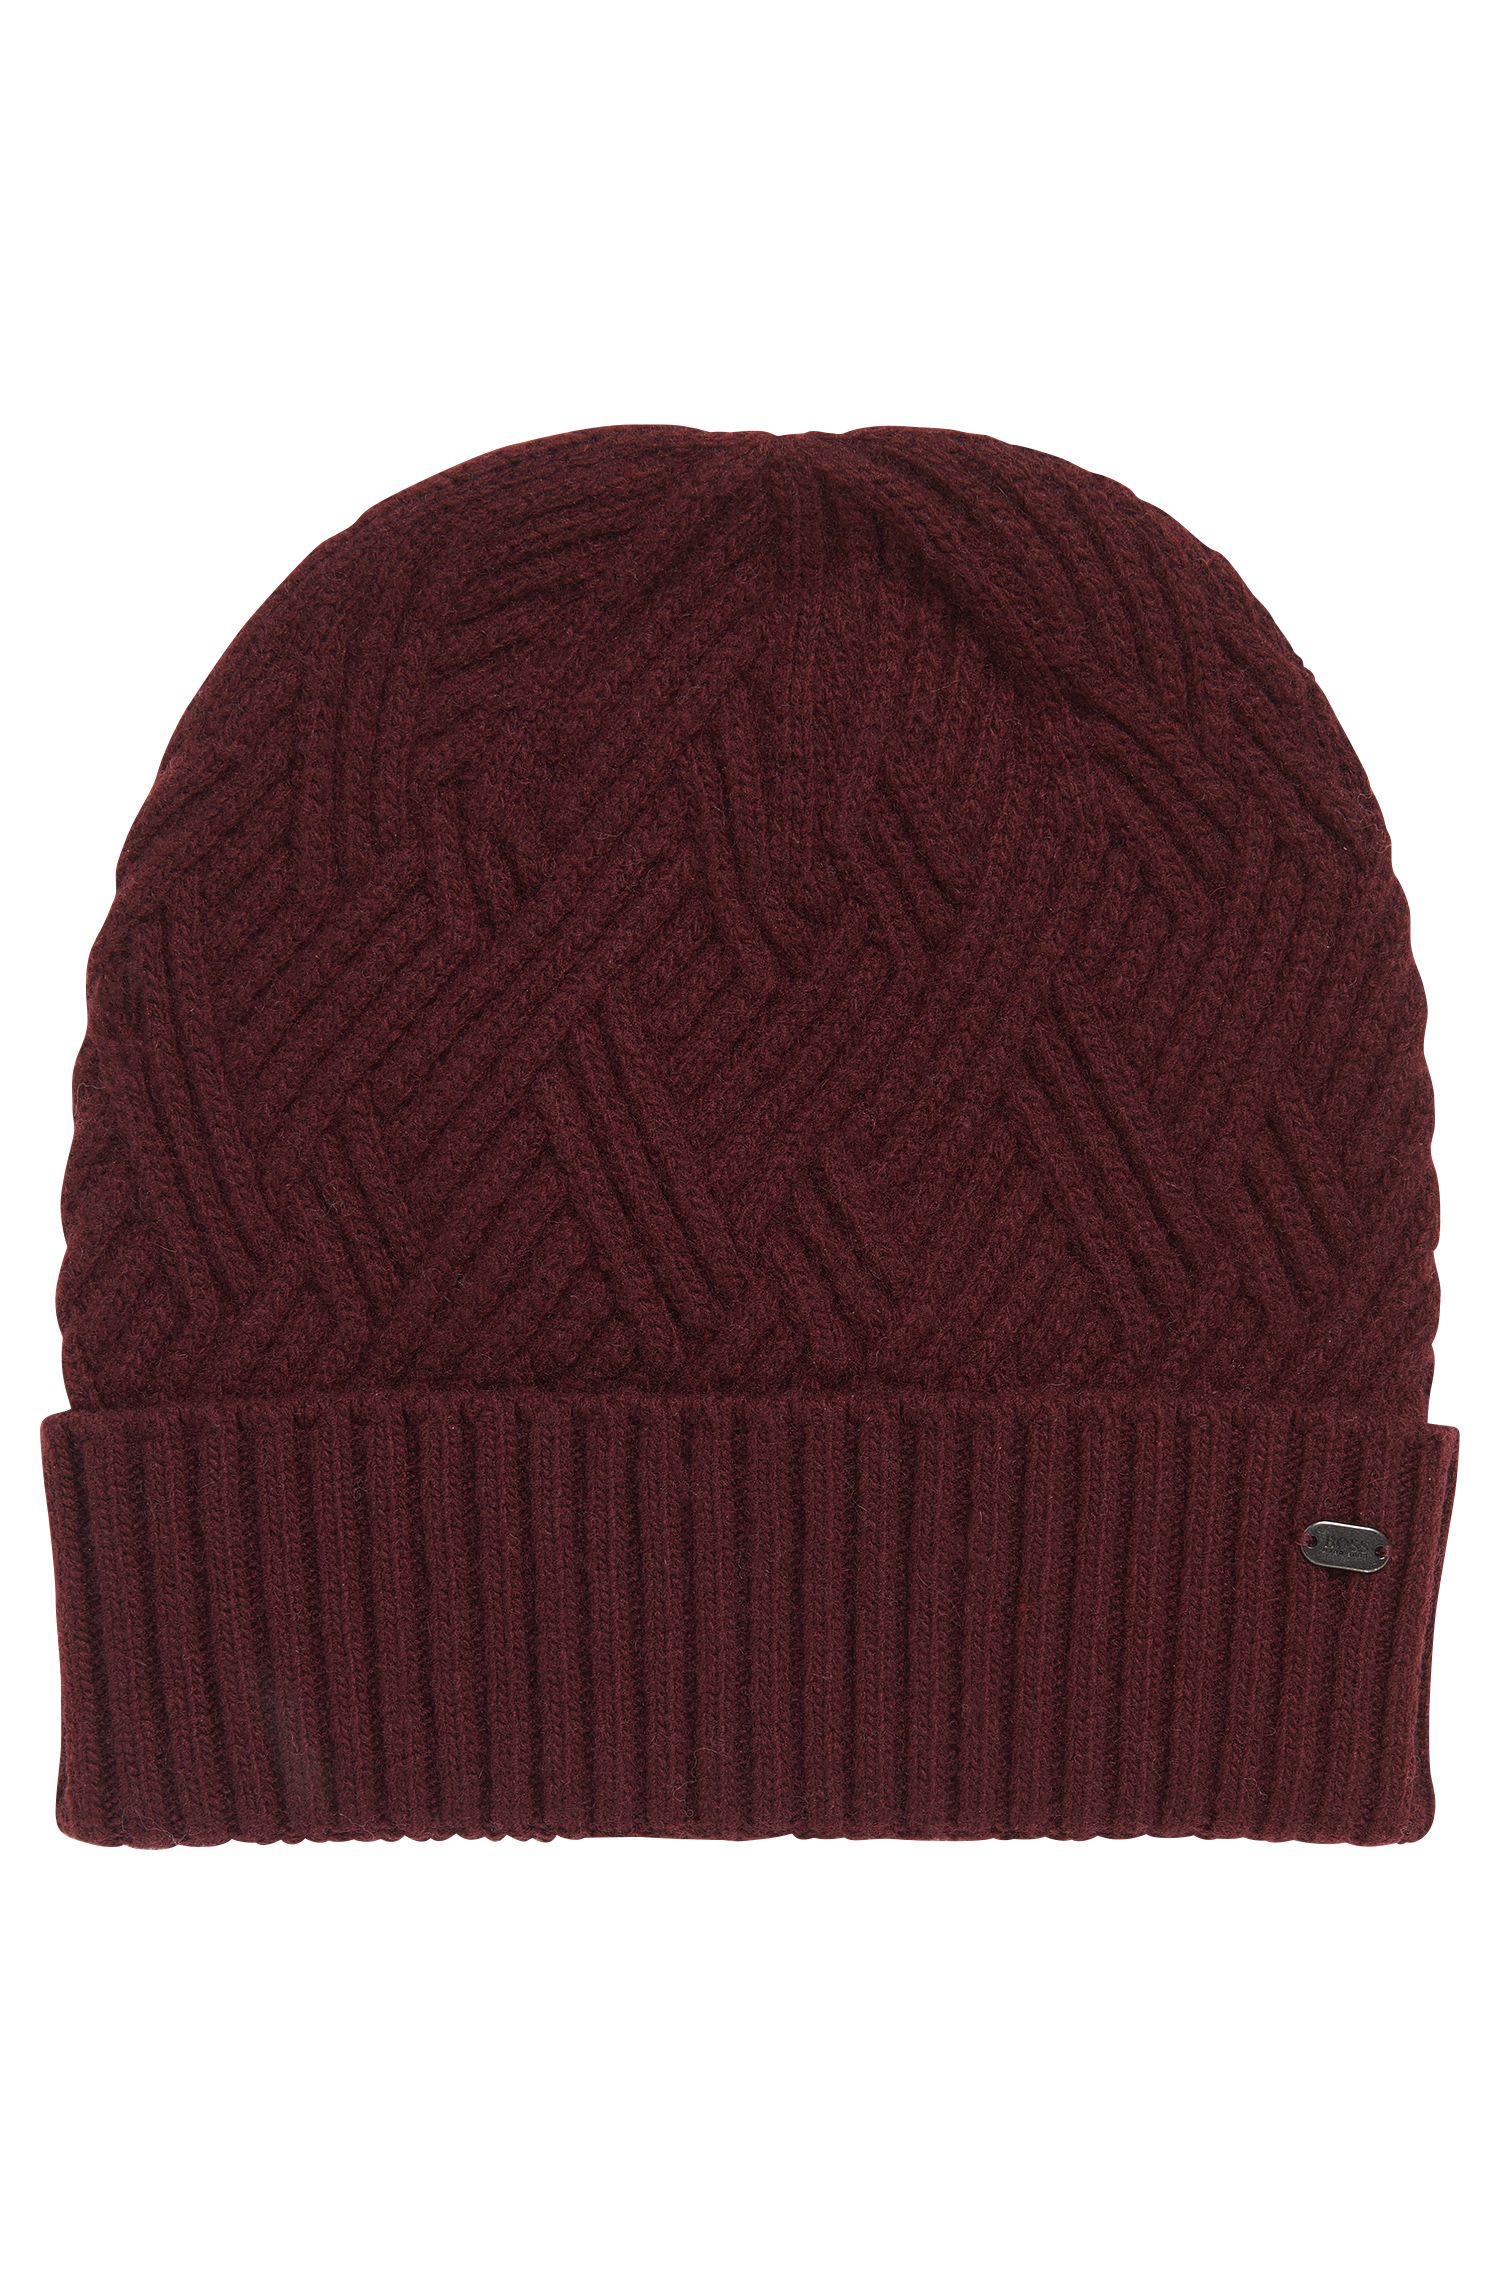 'Beanie Cableknit' | Wool Blend Cable Knit Beanie